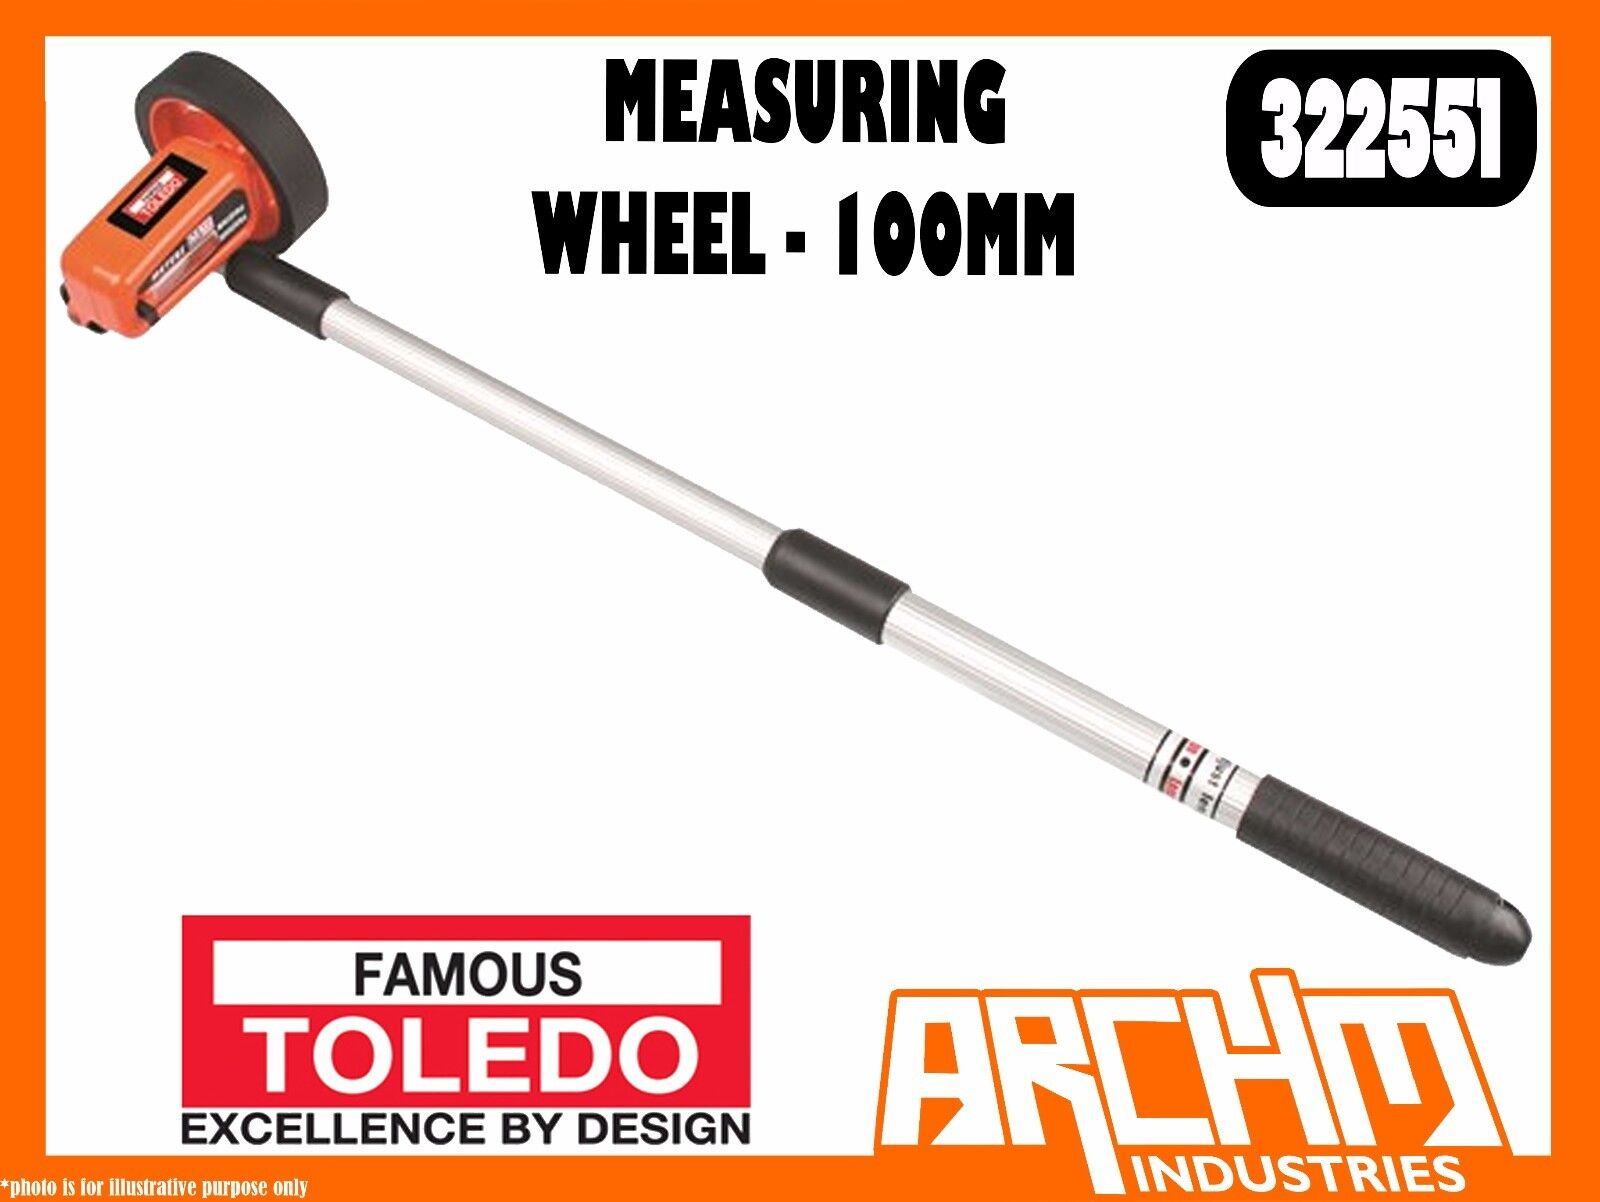 TOLEDO 322551 - MEASURING WHEEL - 100MM - 10 KILOMETRE RANGE HEAVY DUTY COMPACT